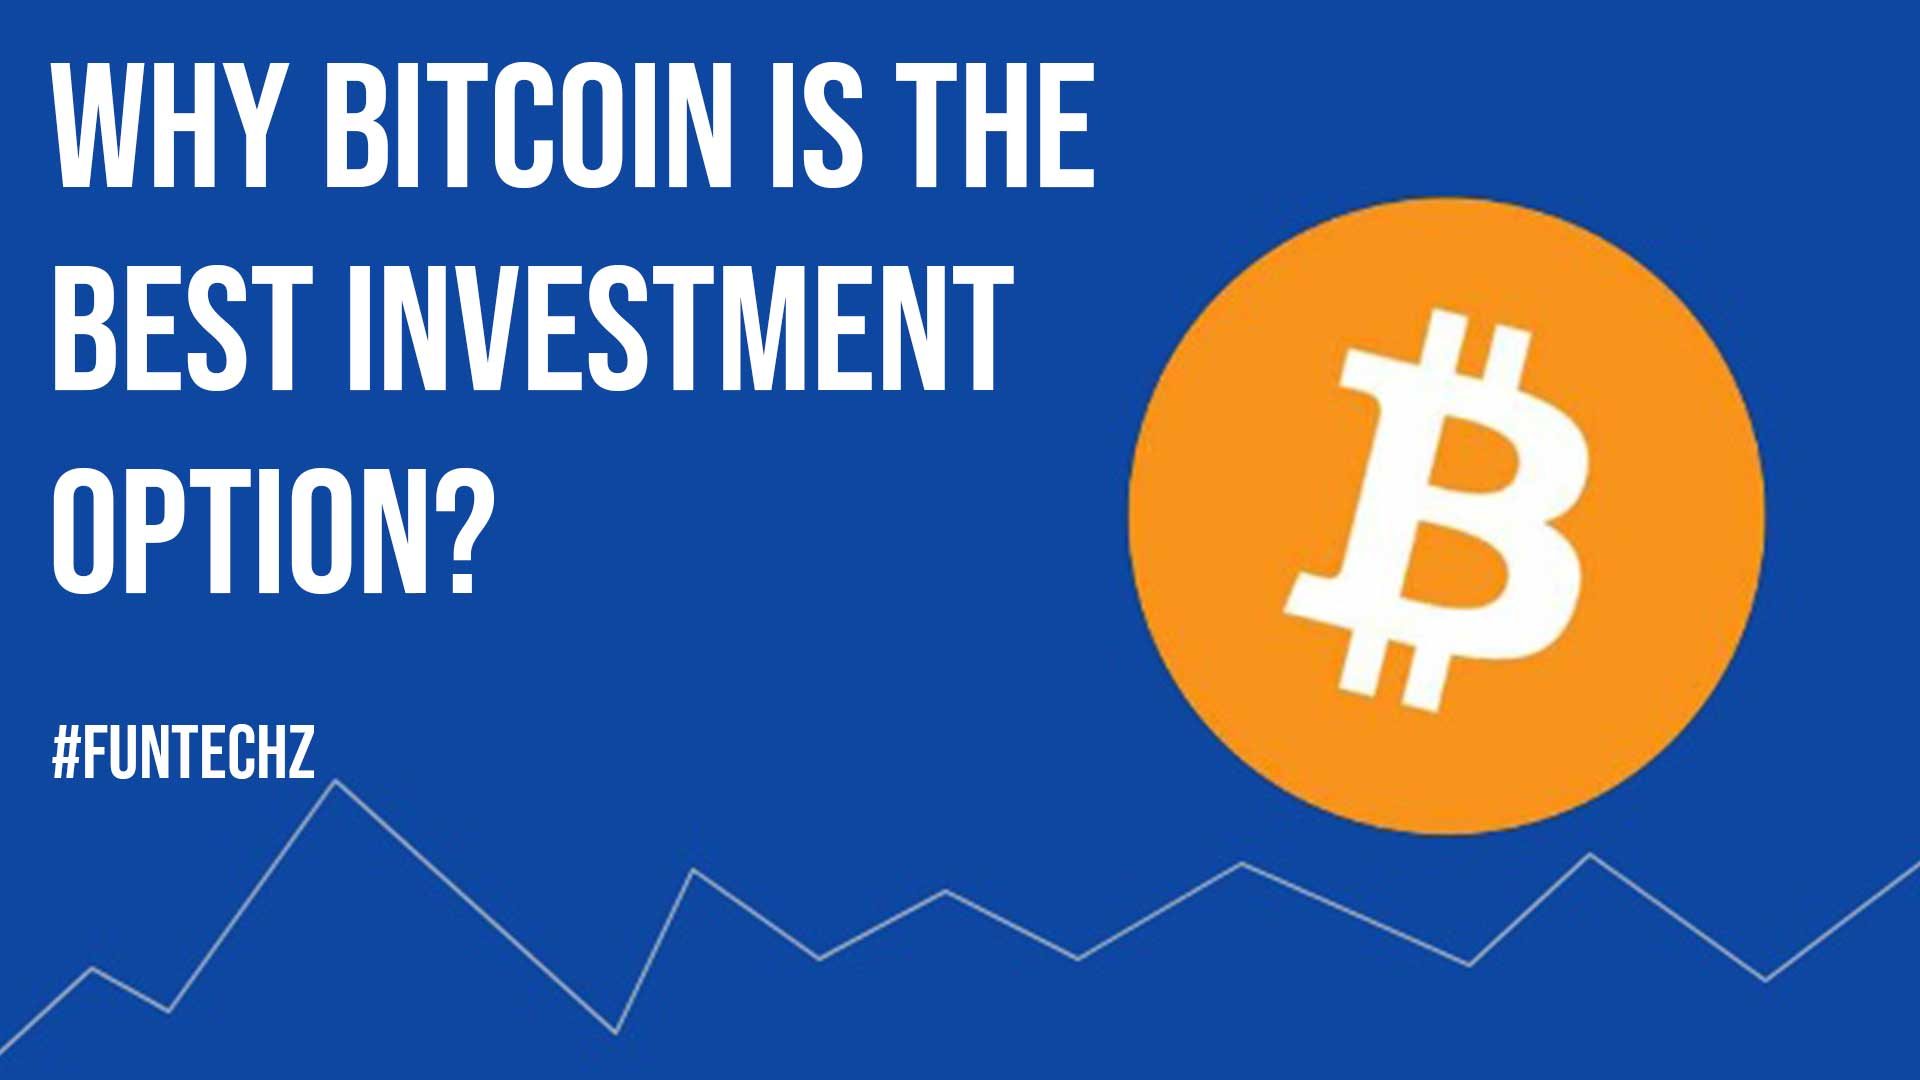 Why Bitcoin is the Best Investment Option